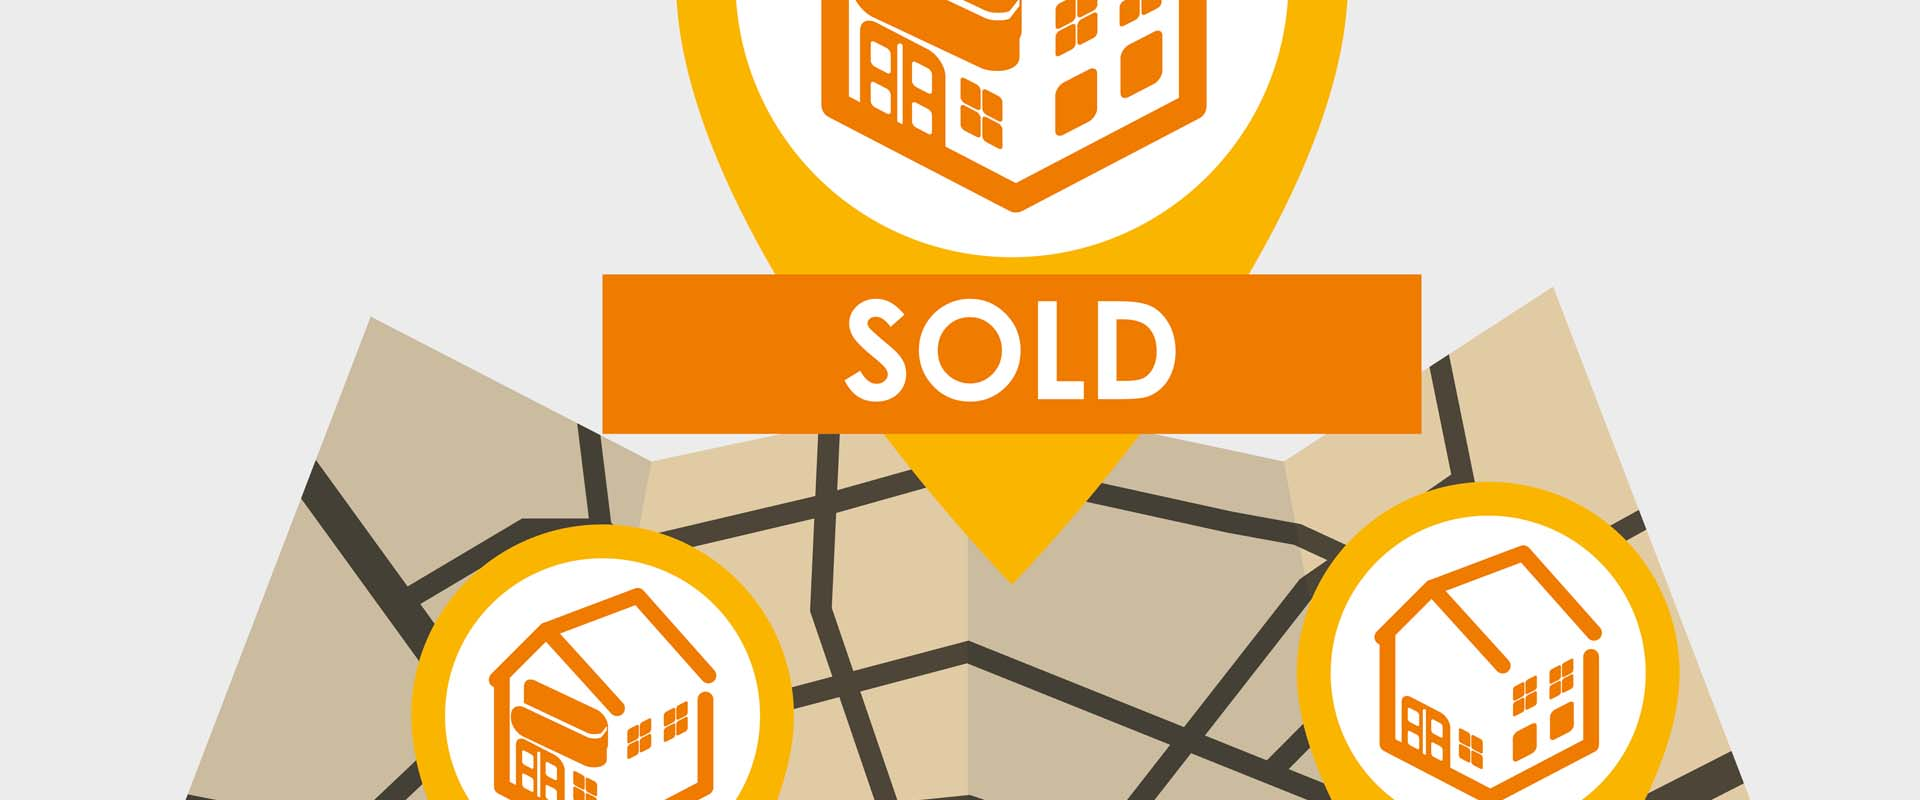 Find out the SOLD prices in your neighbourhood